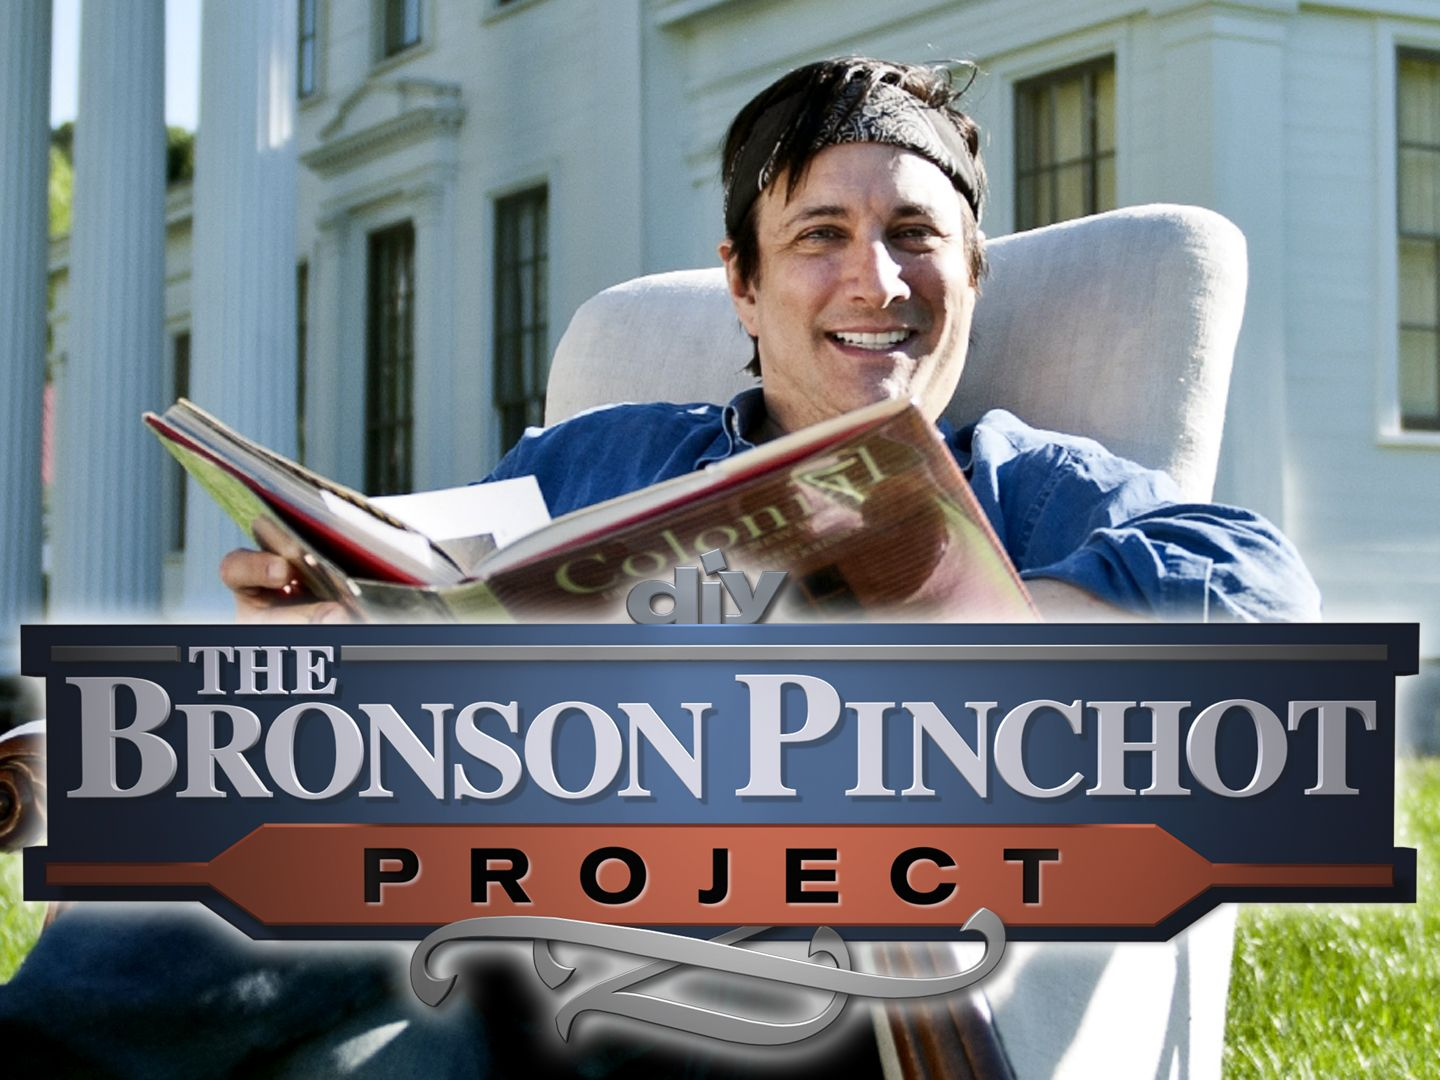 The Bronson Pinchot Project on diy- Google Search | Television ...